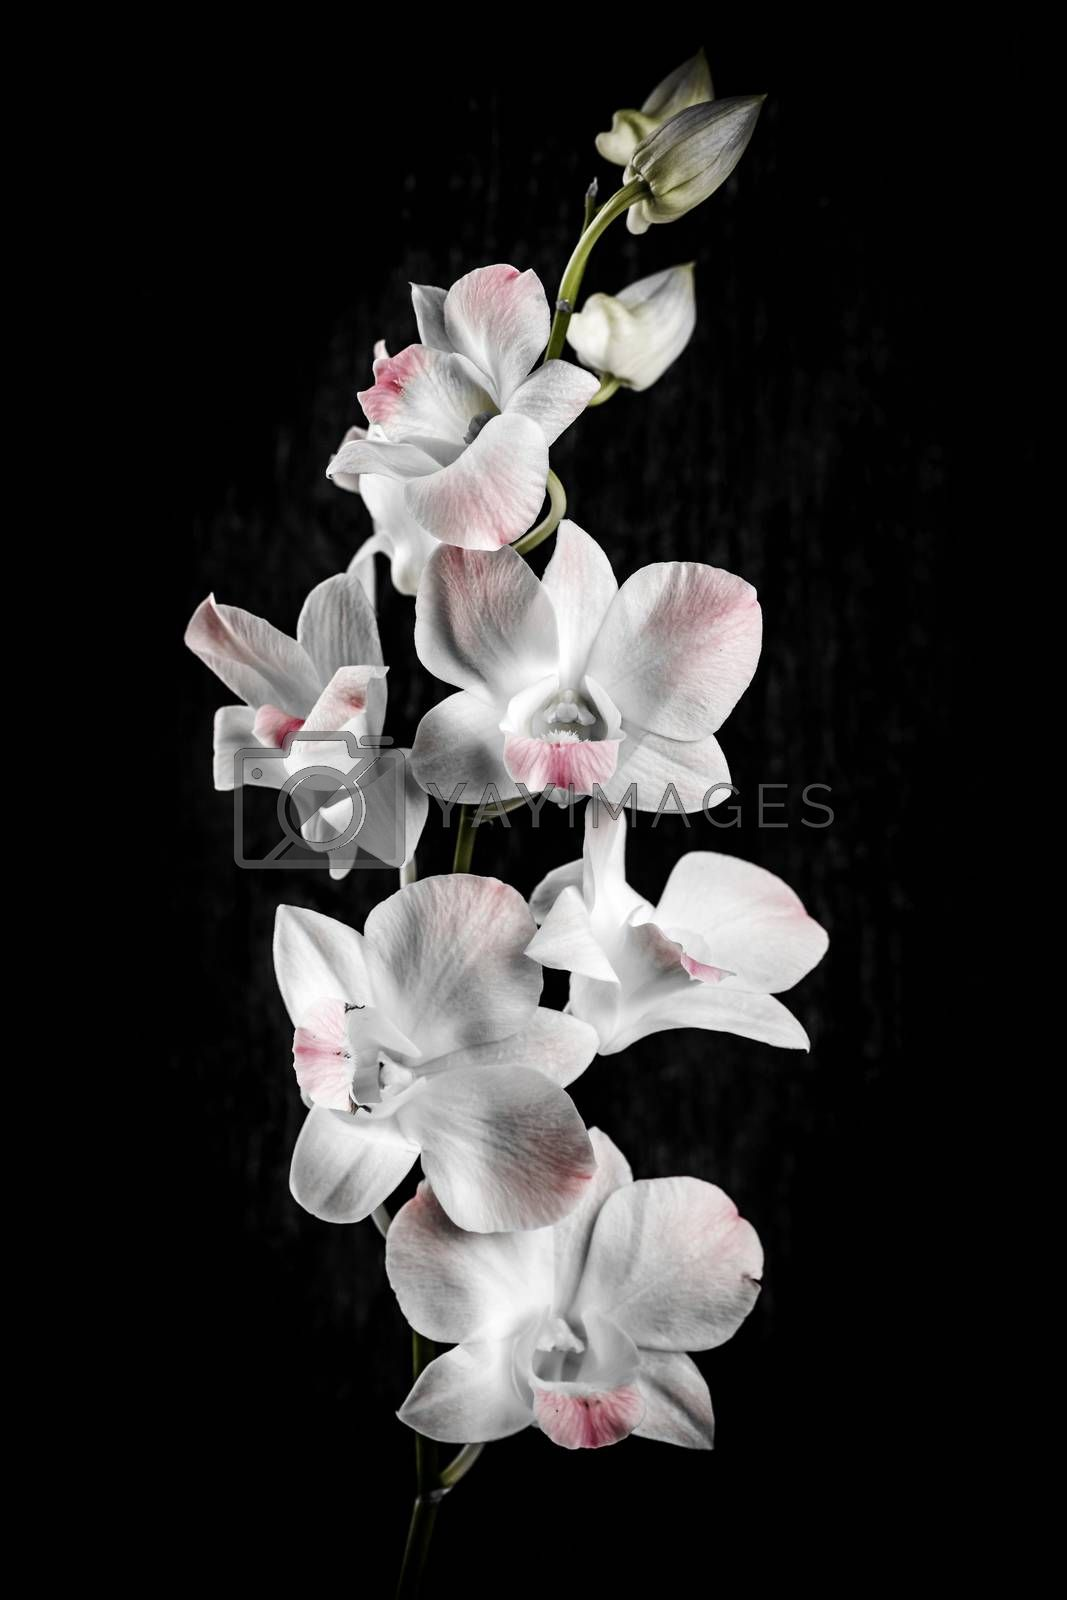 Pink and white orchid flowers on black background